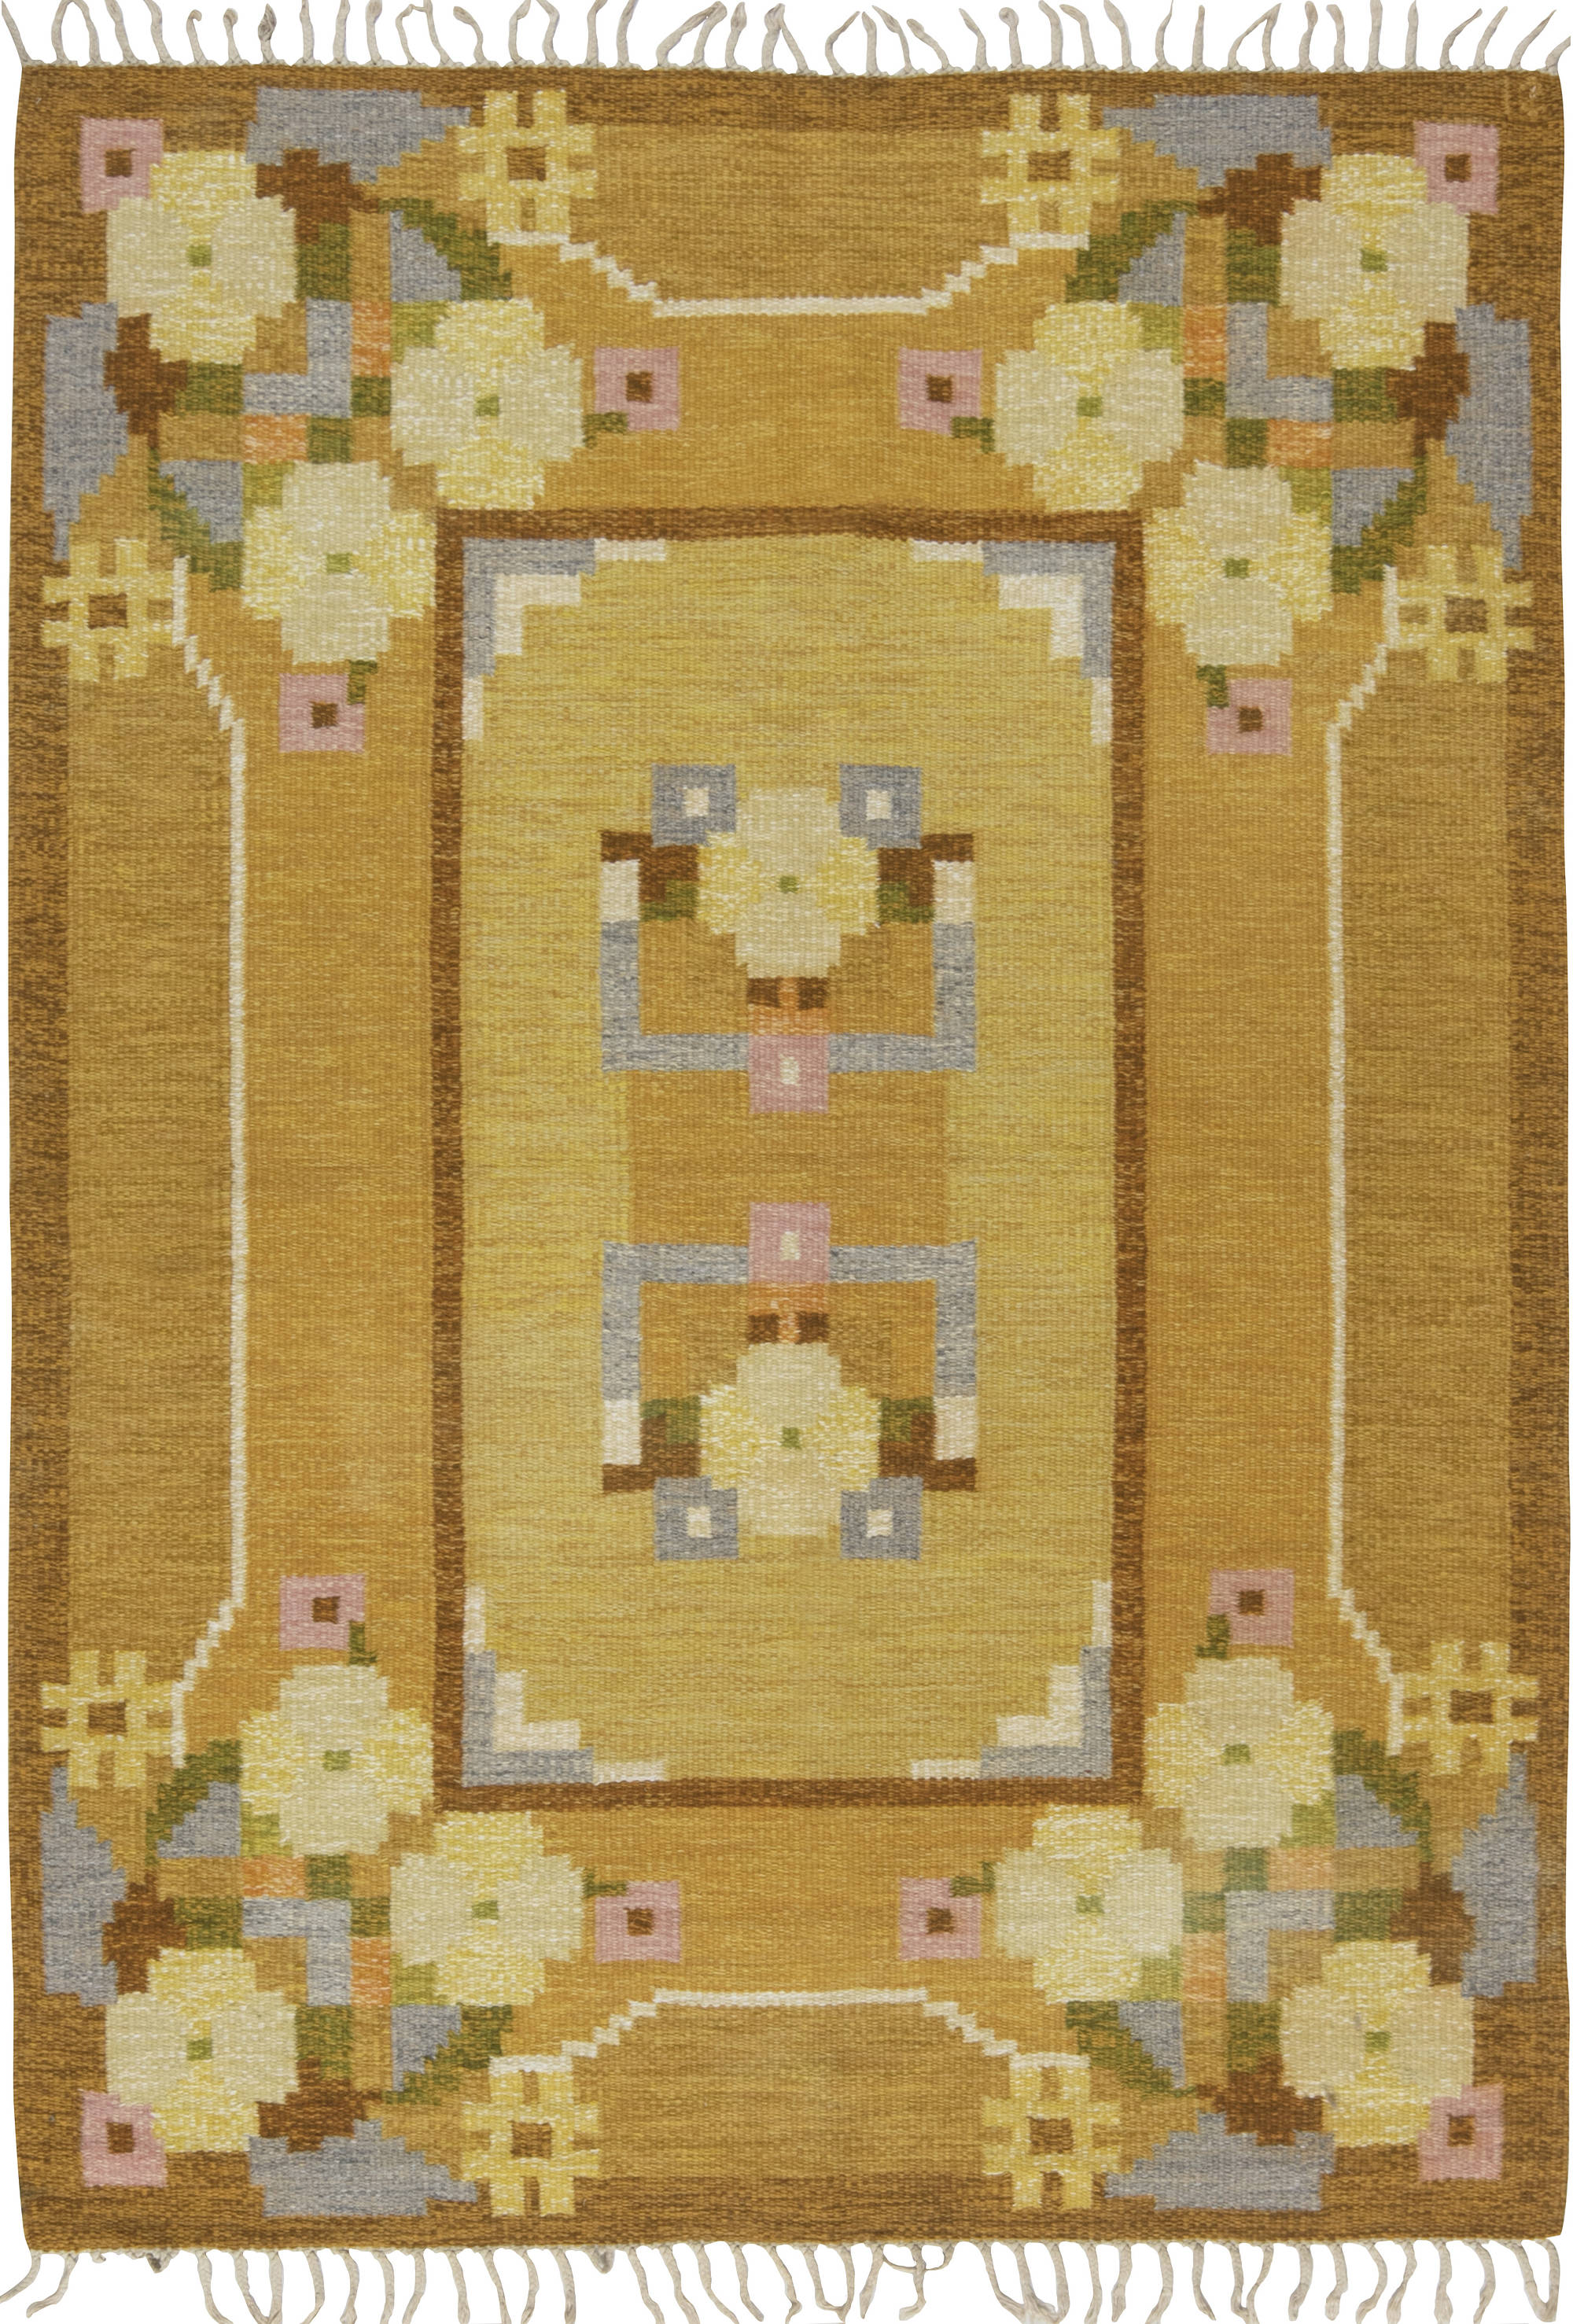 Vintage Swedish flat weave rug signed by Ingegerd Silow BB6579